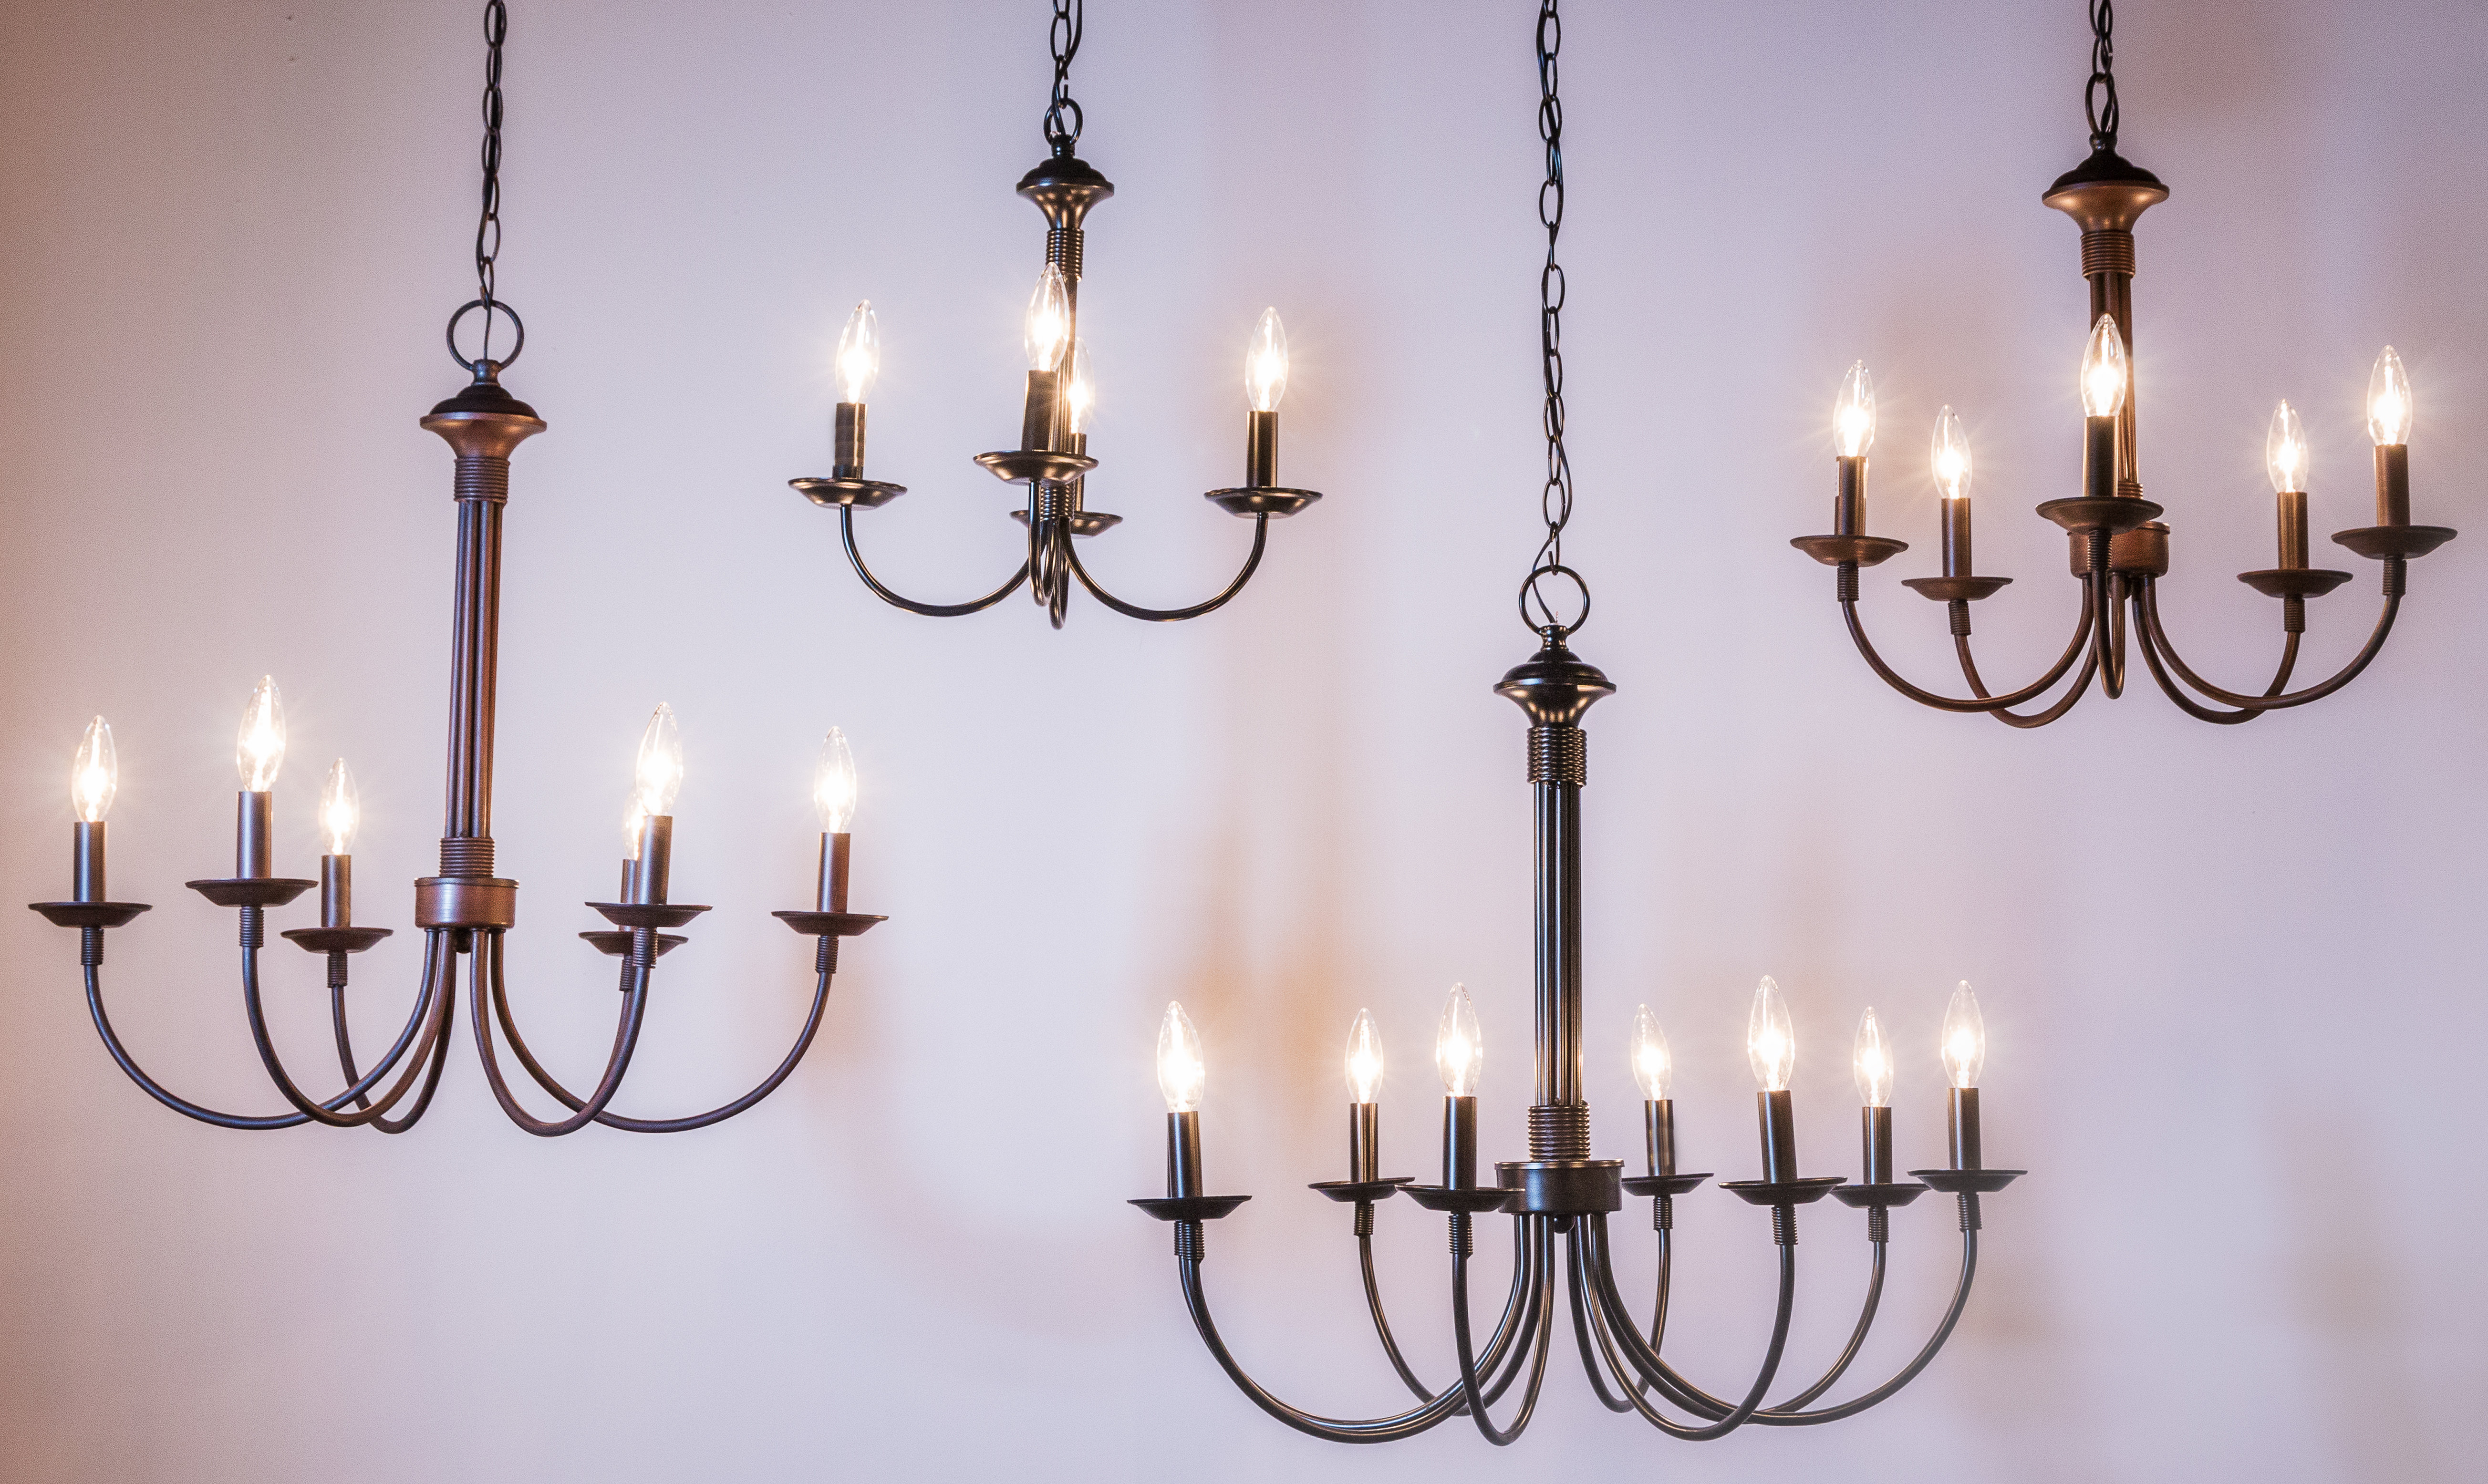 Most Recent Shaylee 5 Light Candle Style Chandelier With Regard To Shaylee 6 Light Candle Style Chandeliers (View 7 of 25)